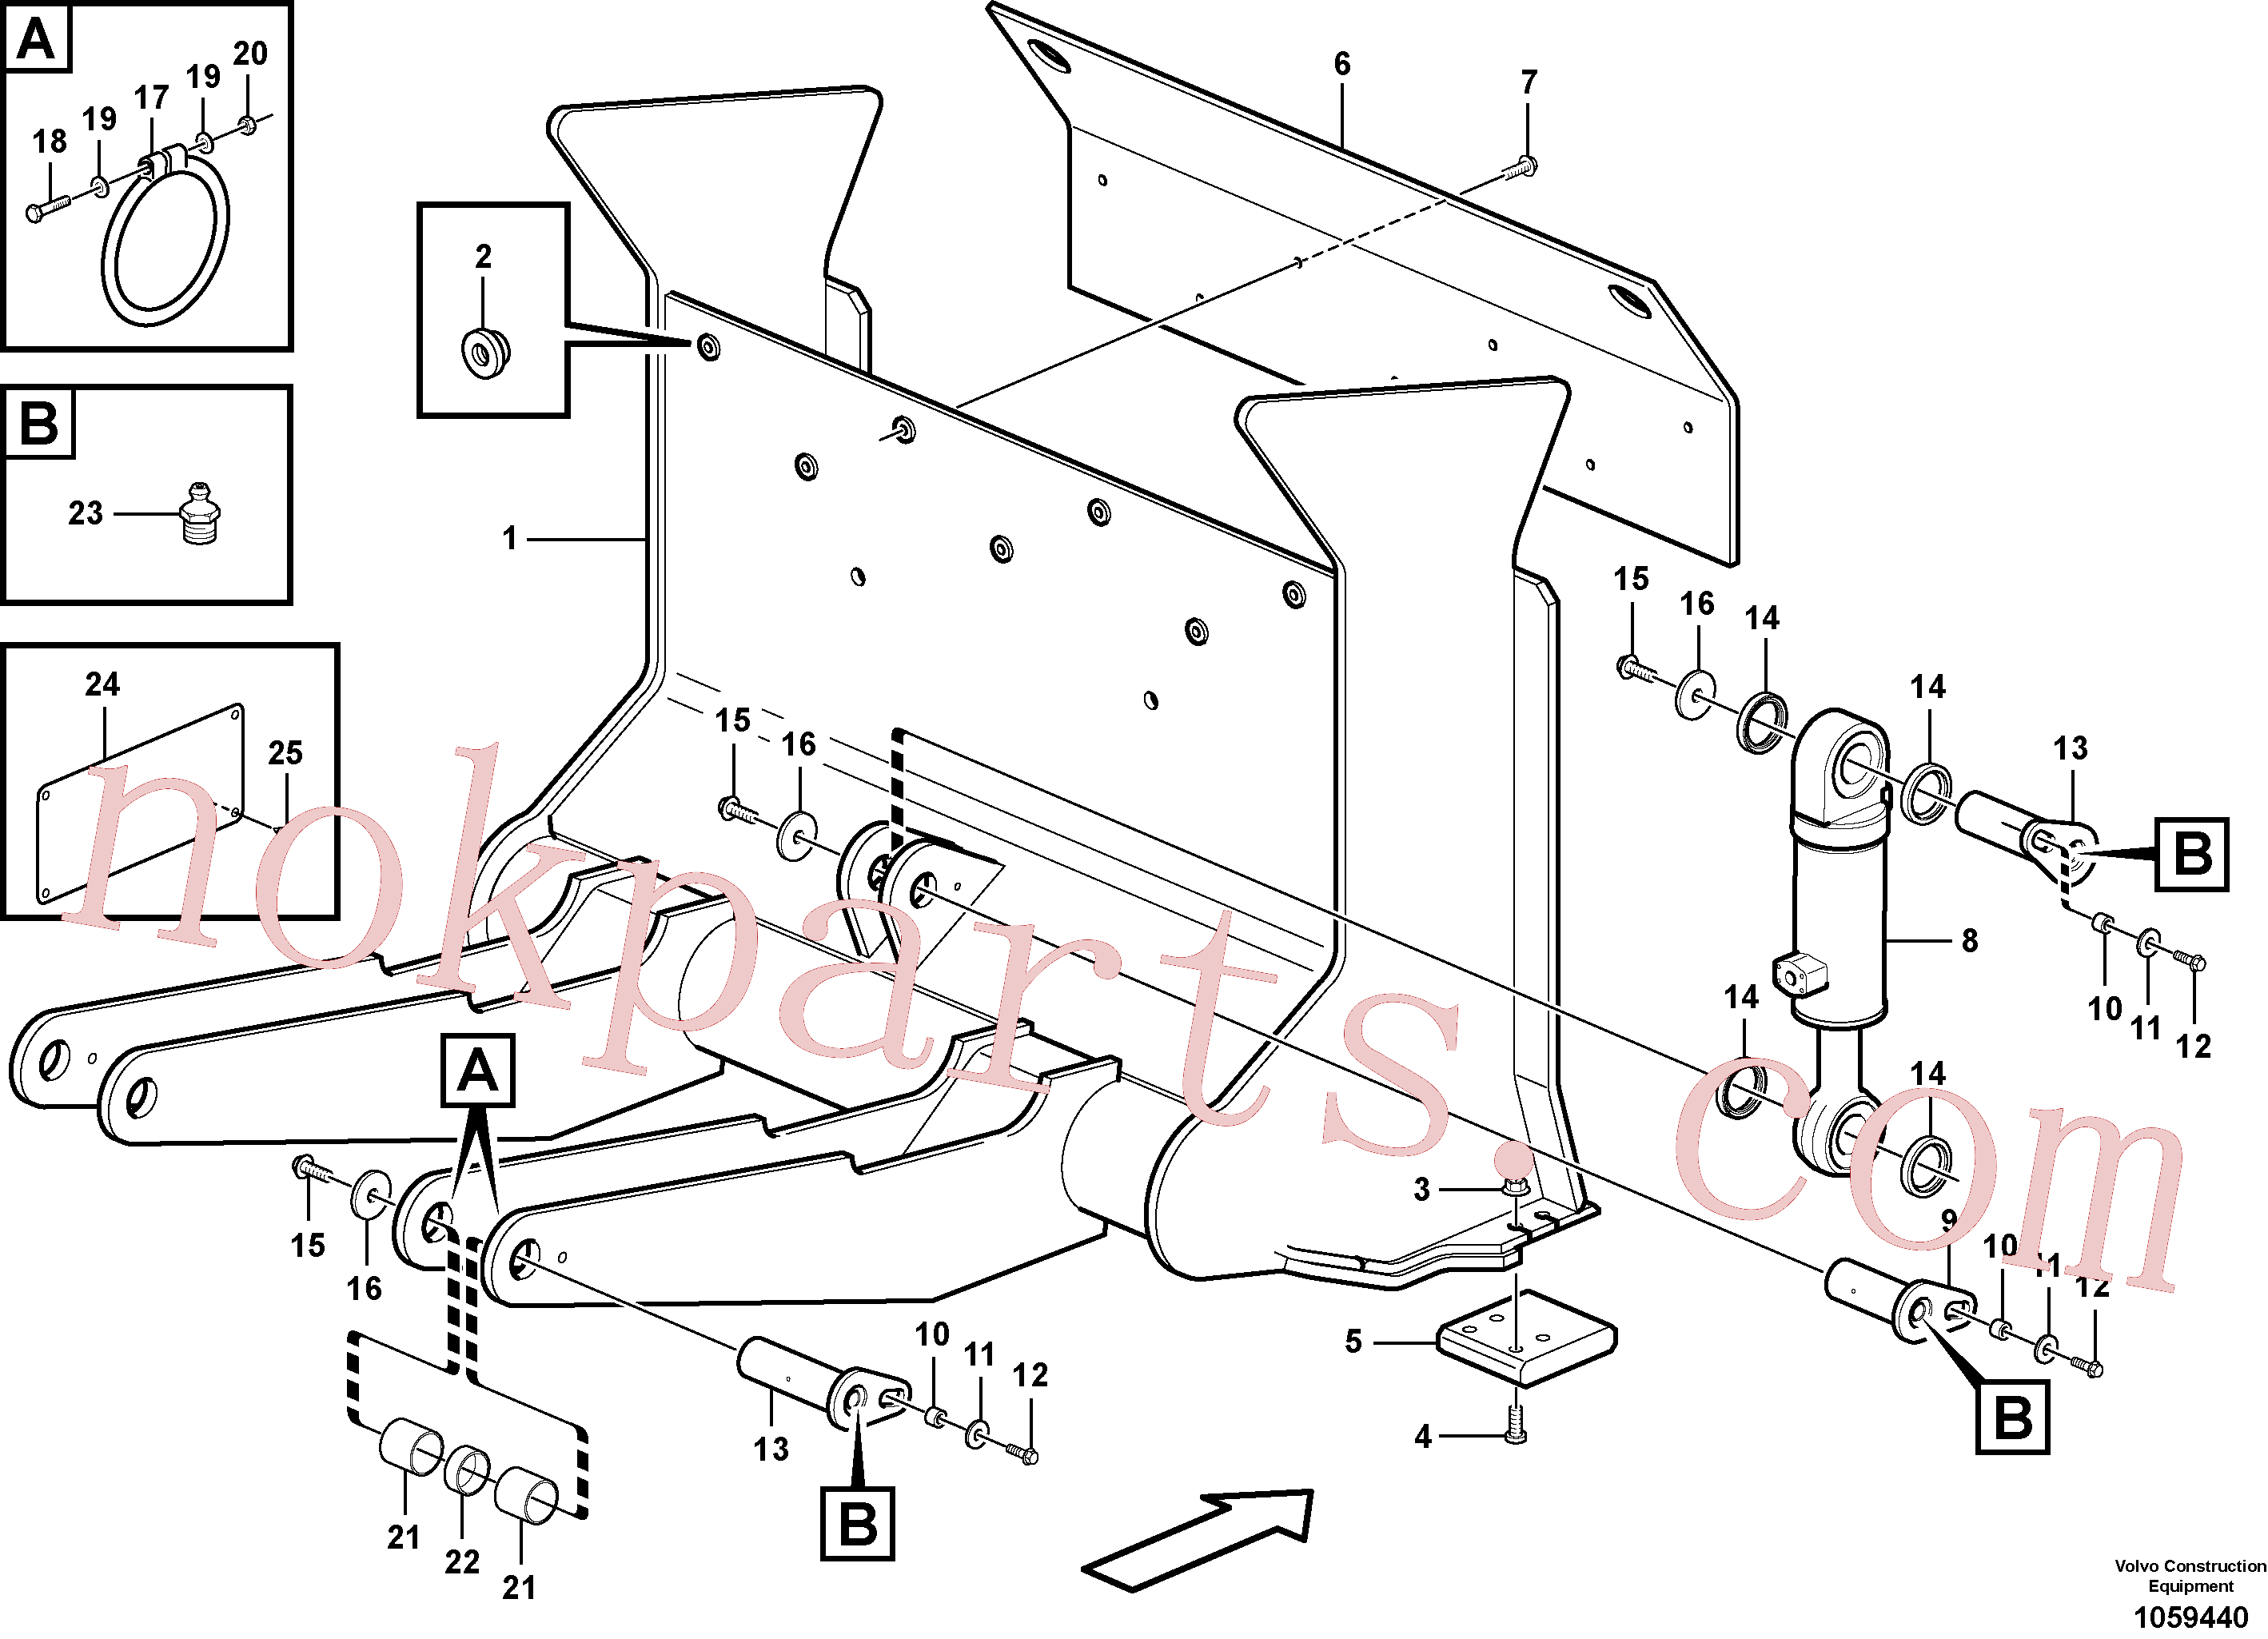 VOE11704121 for Volvo Timber shover(1059440 assembly)